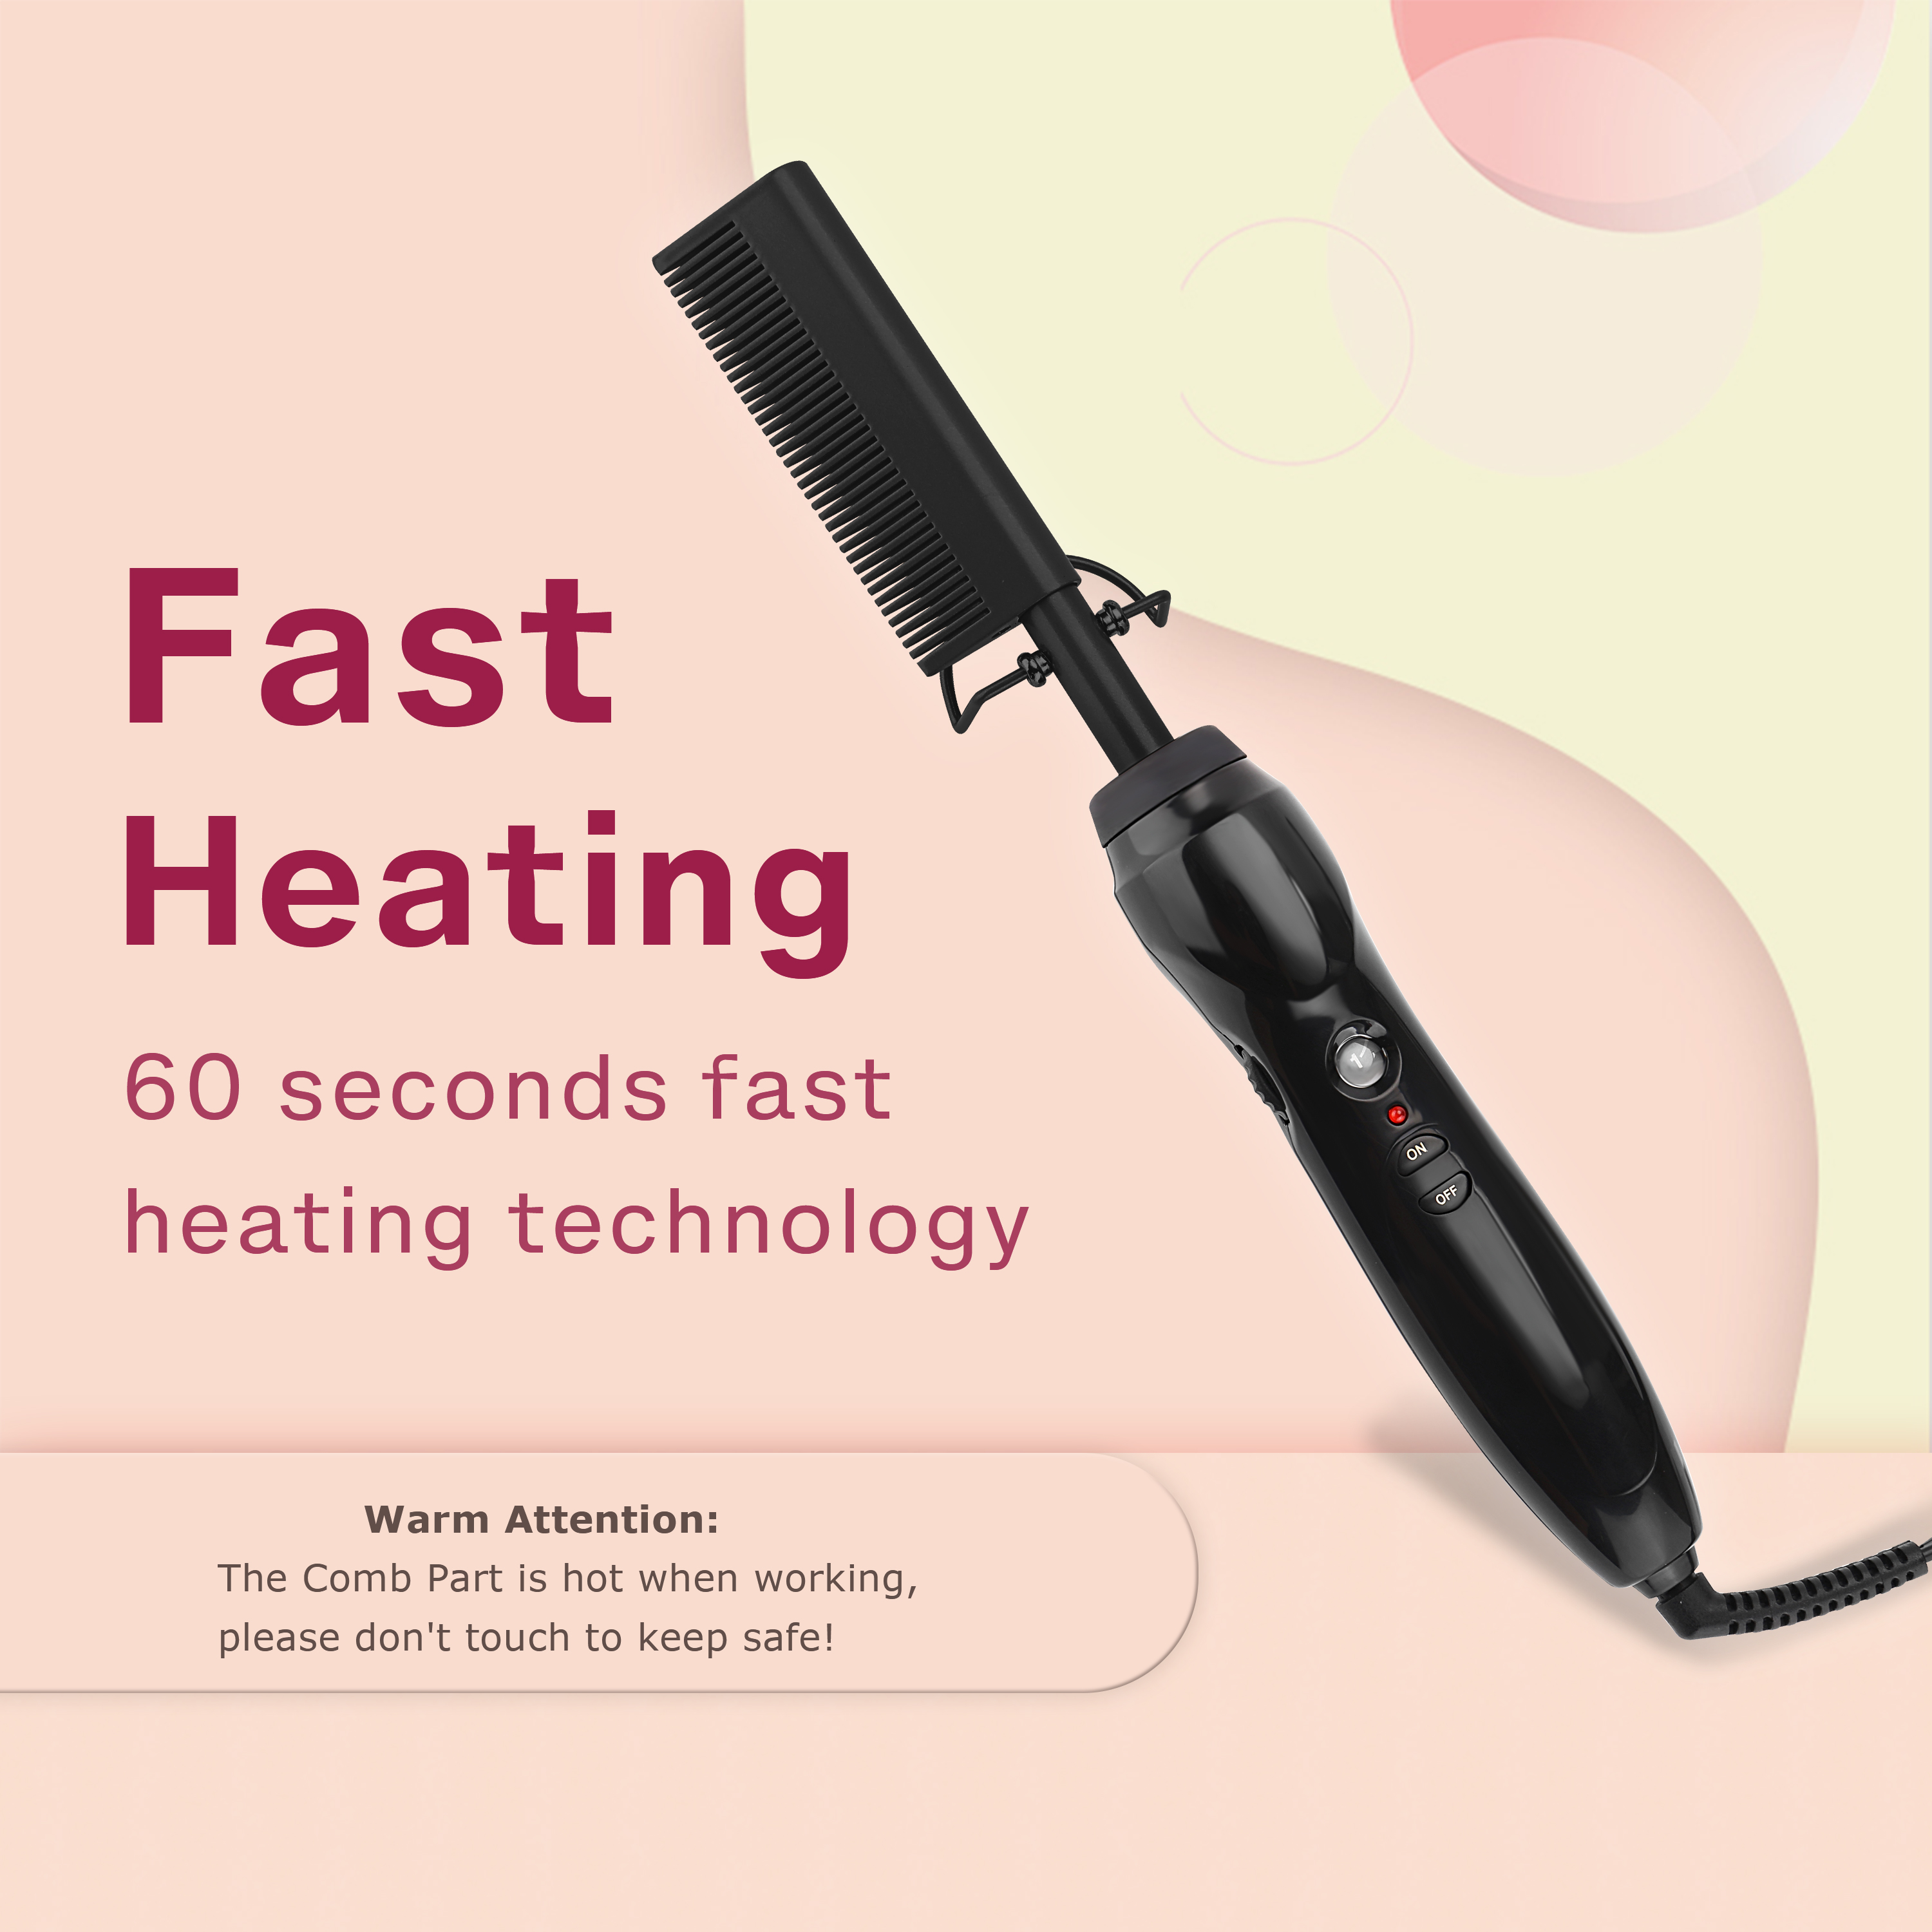 Homfu Electric Hot Straightening Heat Pressing Comb Ceramic Curling Flat Iron Curler Designed Hair Straightener for Natural Black,Anti-Scald Beard Straightener Press Comb (Black)